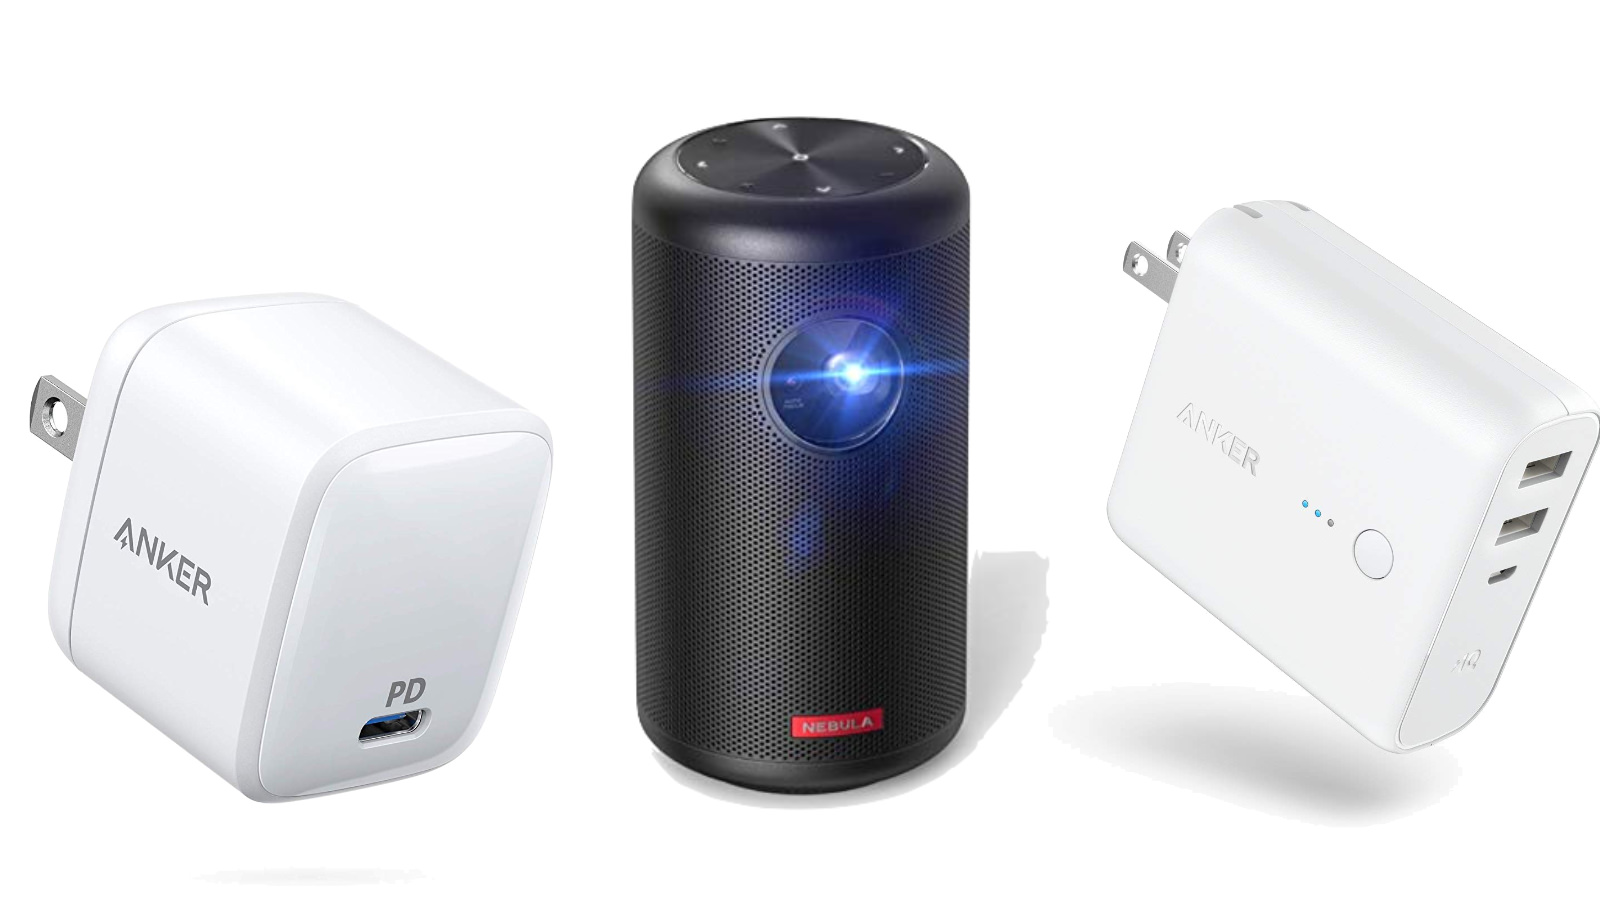 Anker Products on sale